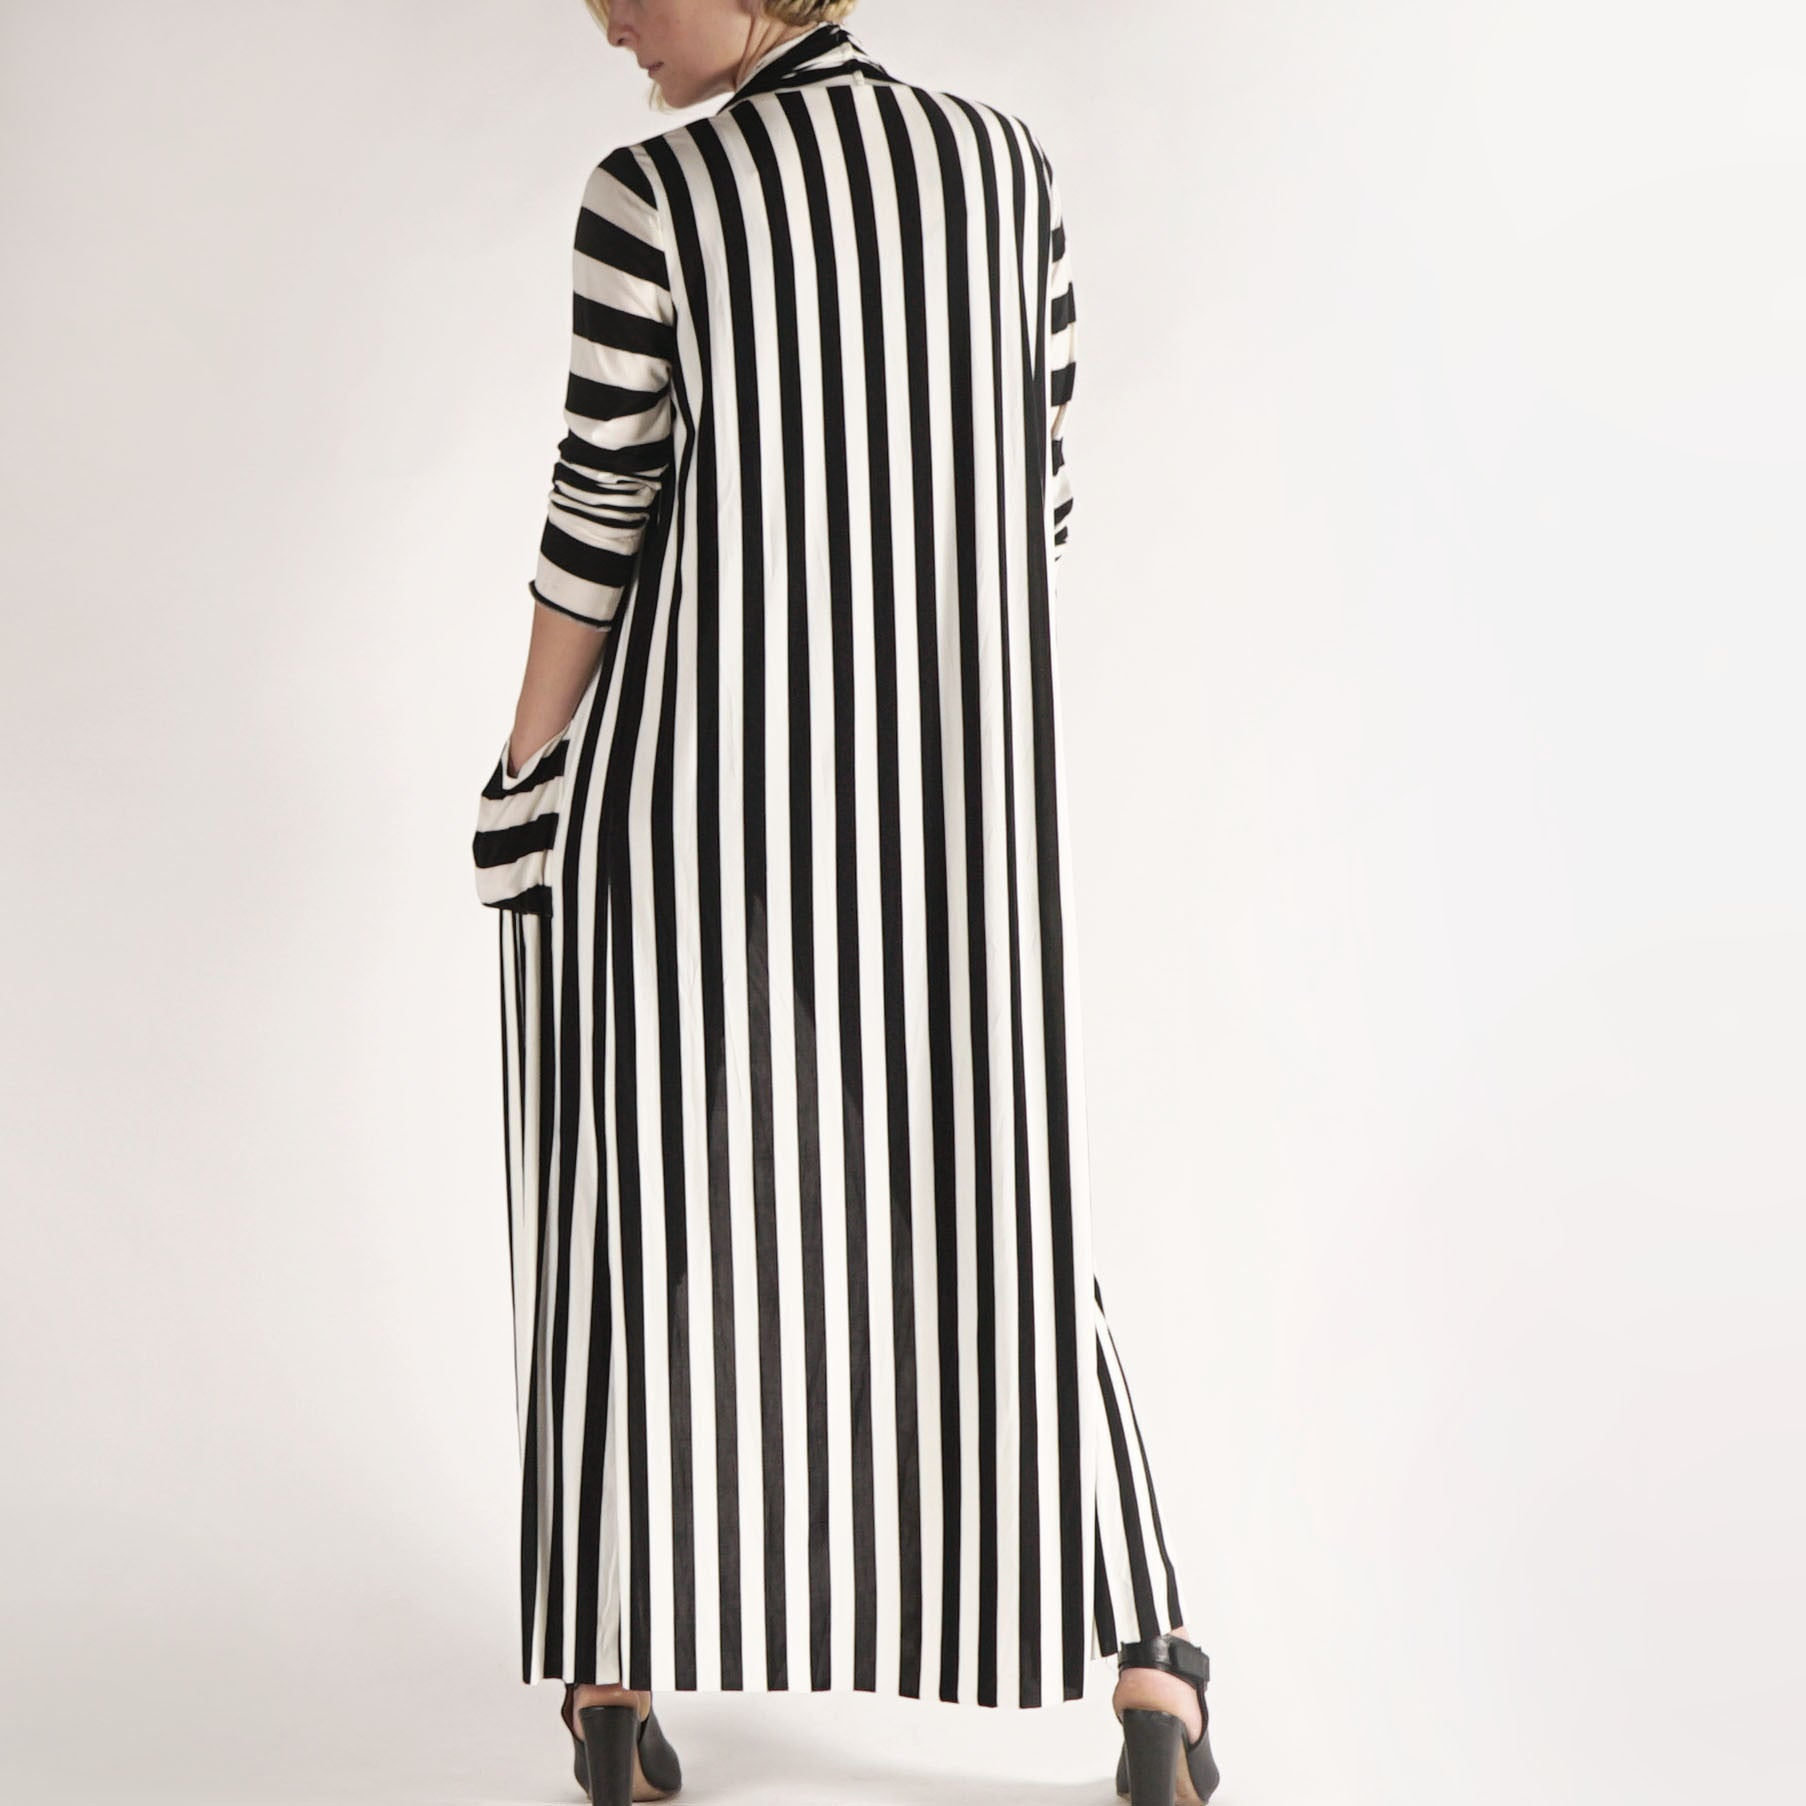 Striped Robe